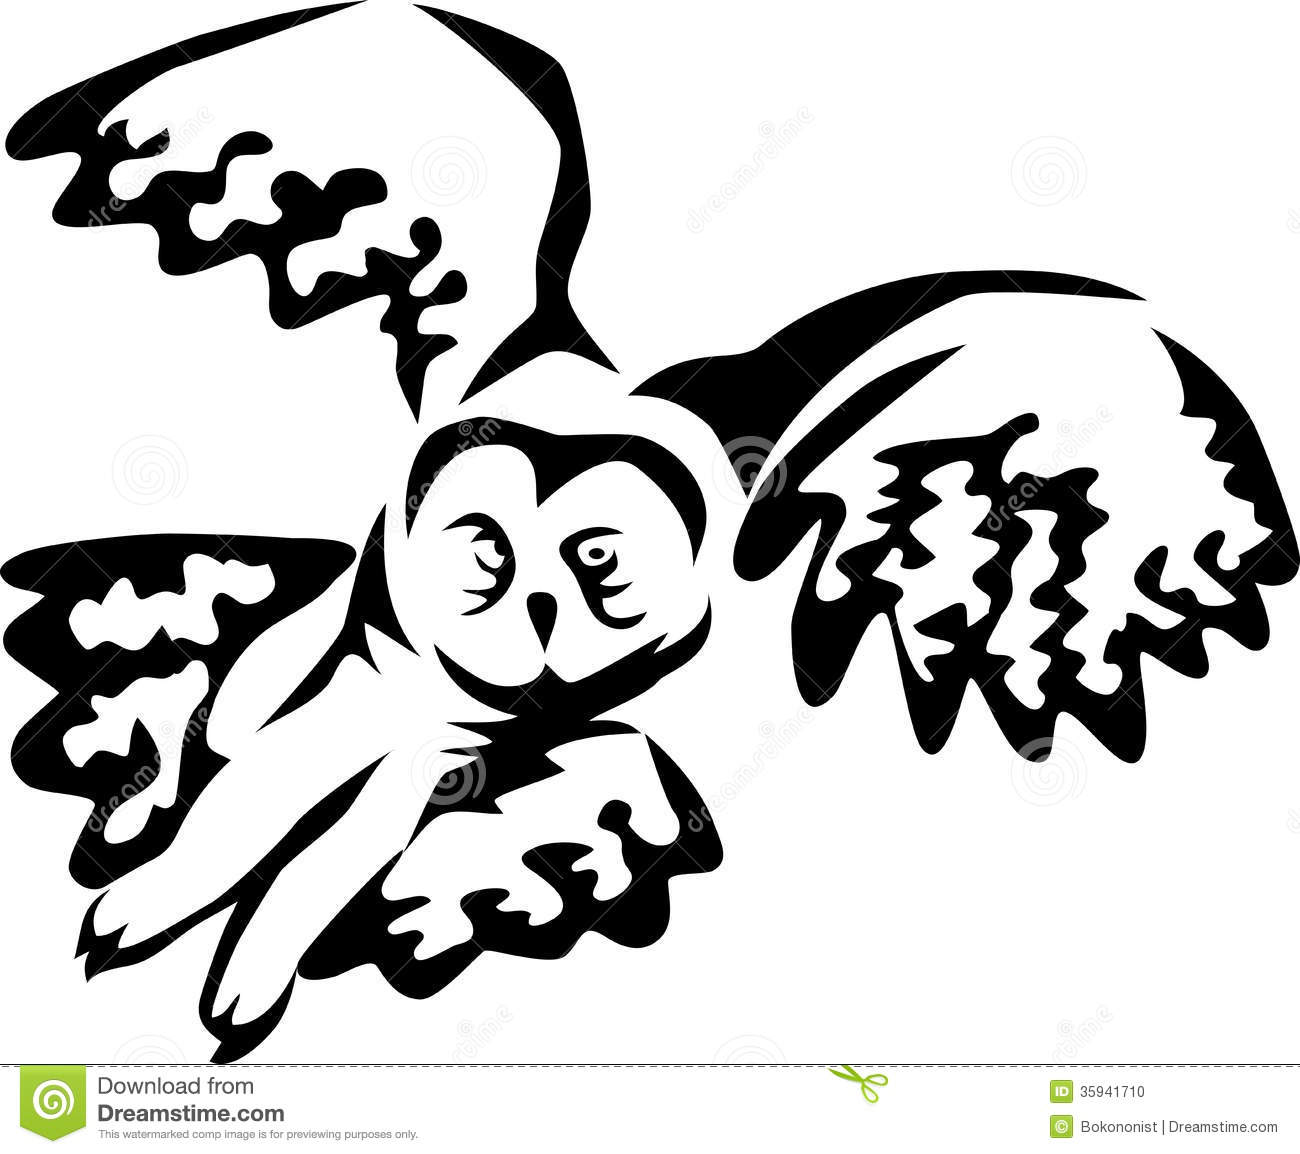 Flying owl drawings black and white - photo#28